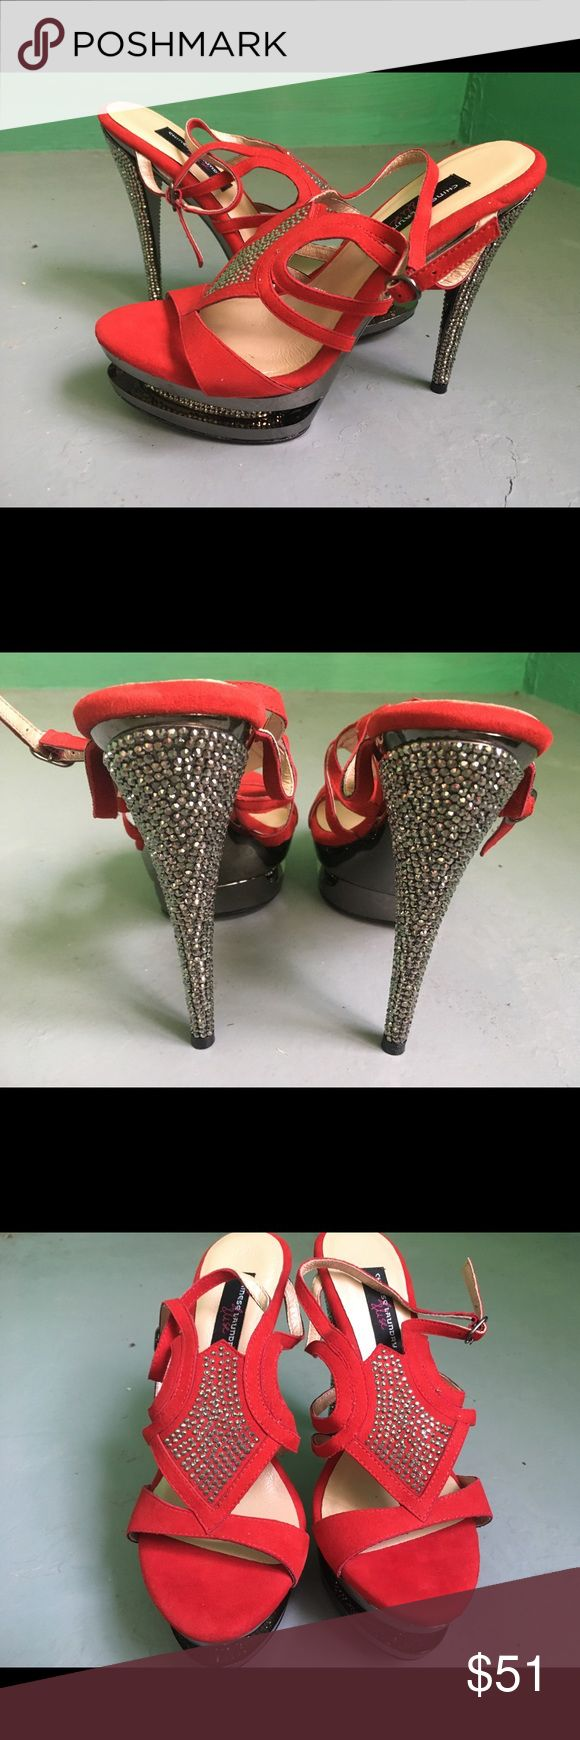 Chinese Laundry Elise Red heels with bling OMG, these are fantasy shoes! Red with sparkling heels and a blinged out platform. Chinese Laundry Shoes Heels